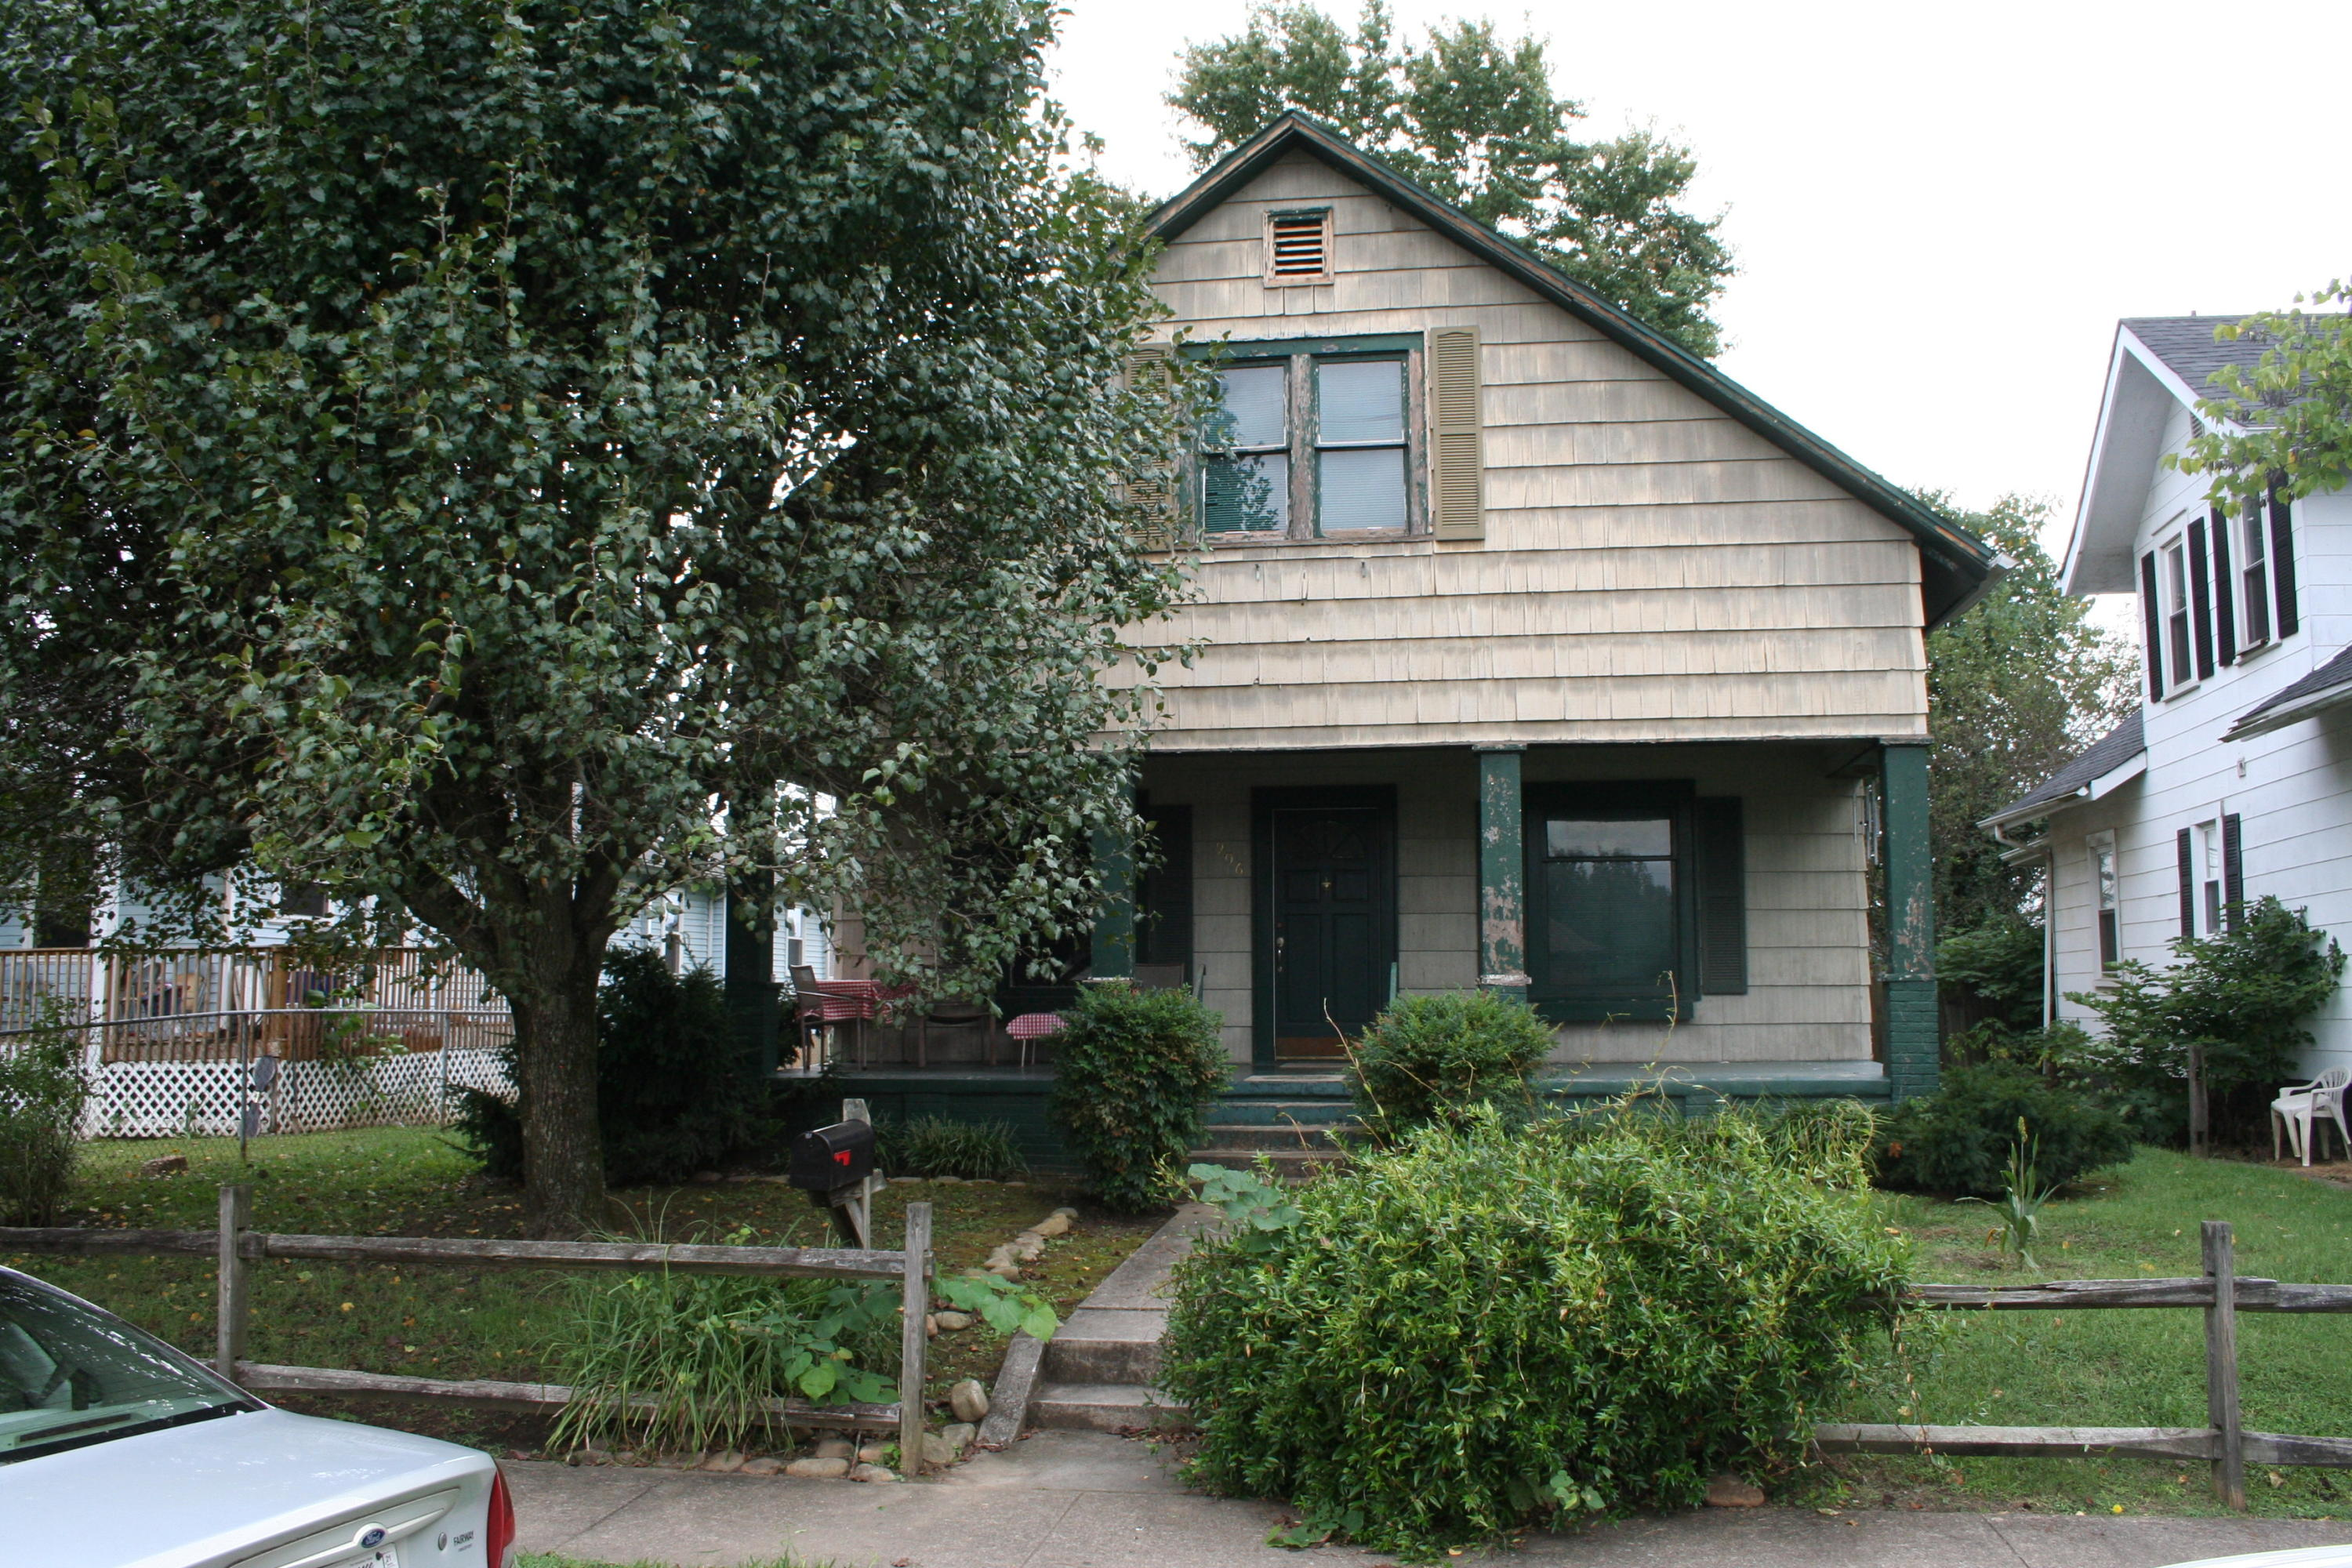 906 Dale Street, Kingsport, Tennessee 37660, 6 Bedrooms Bedrooms, ,2 BathroomsBathrooms,Single Family,For Sale,906 Dale Street,2,9913240